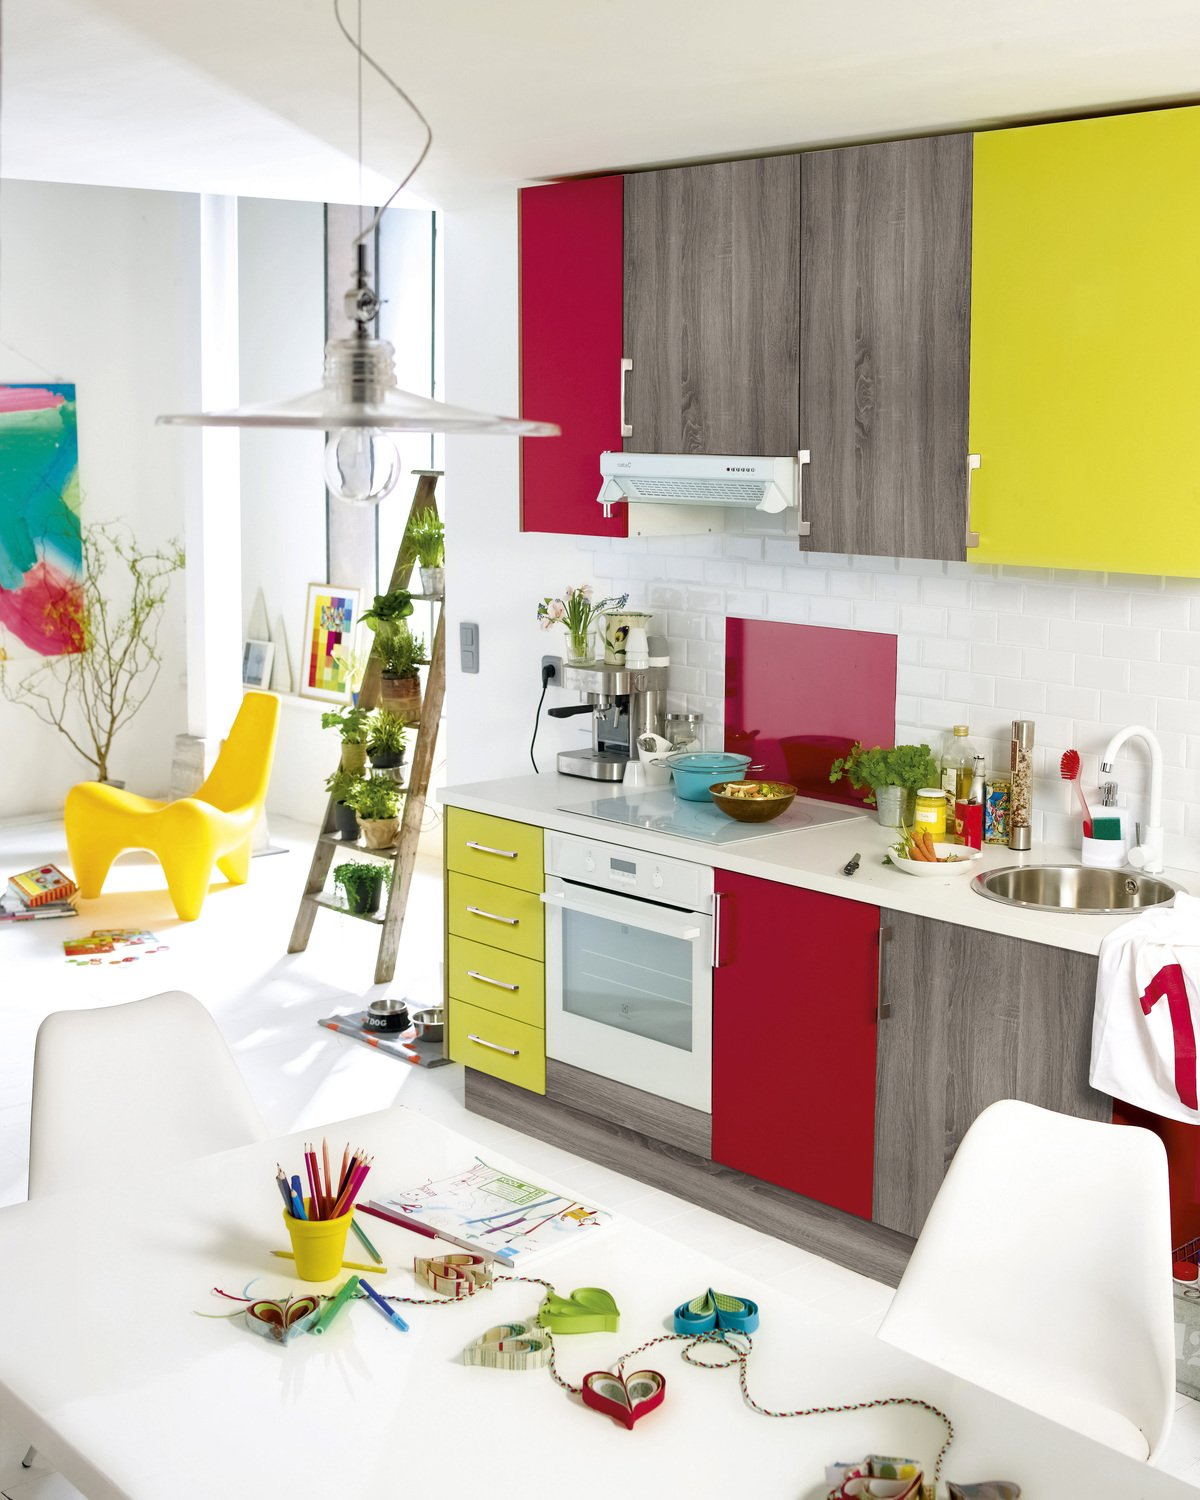 Patchwork de couleurs en cuisine leroy merlin for Leroy merlin cuisines